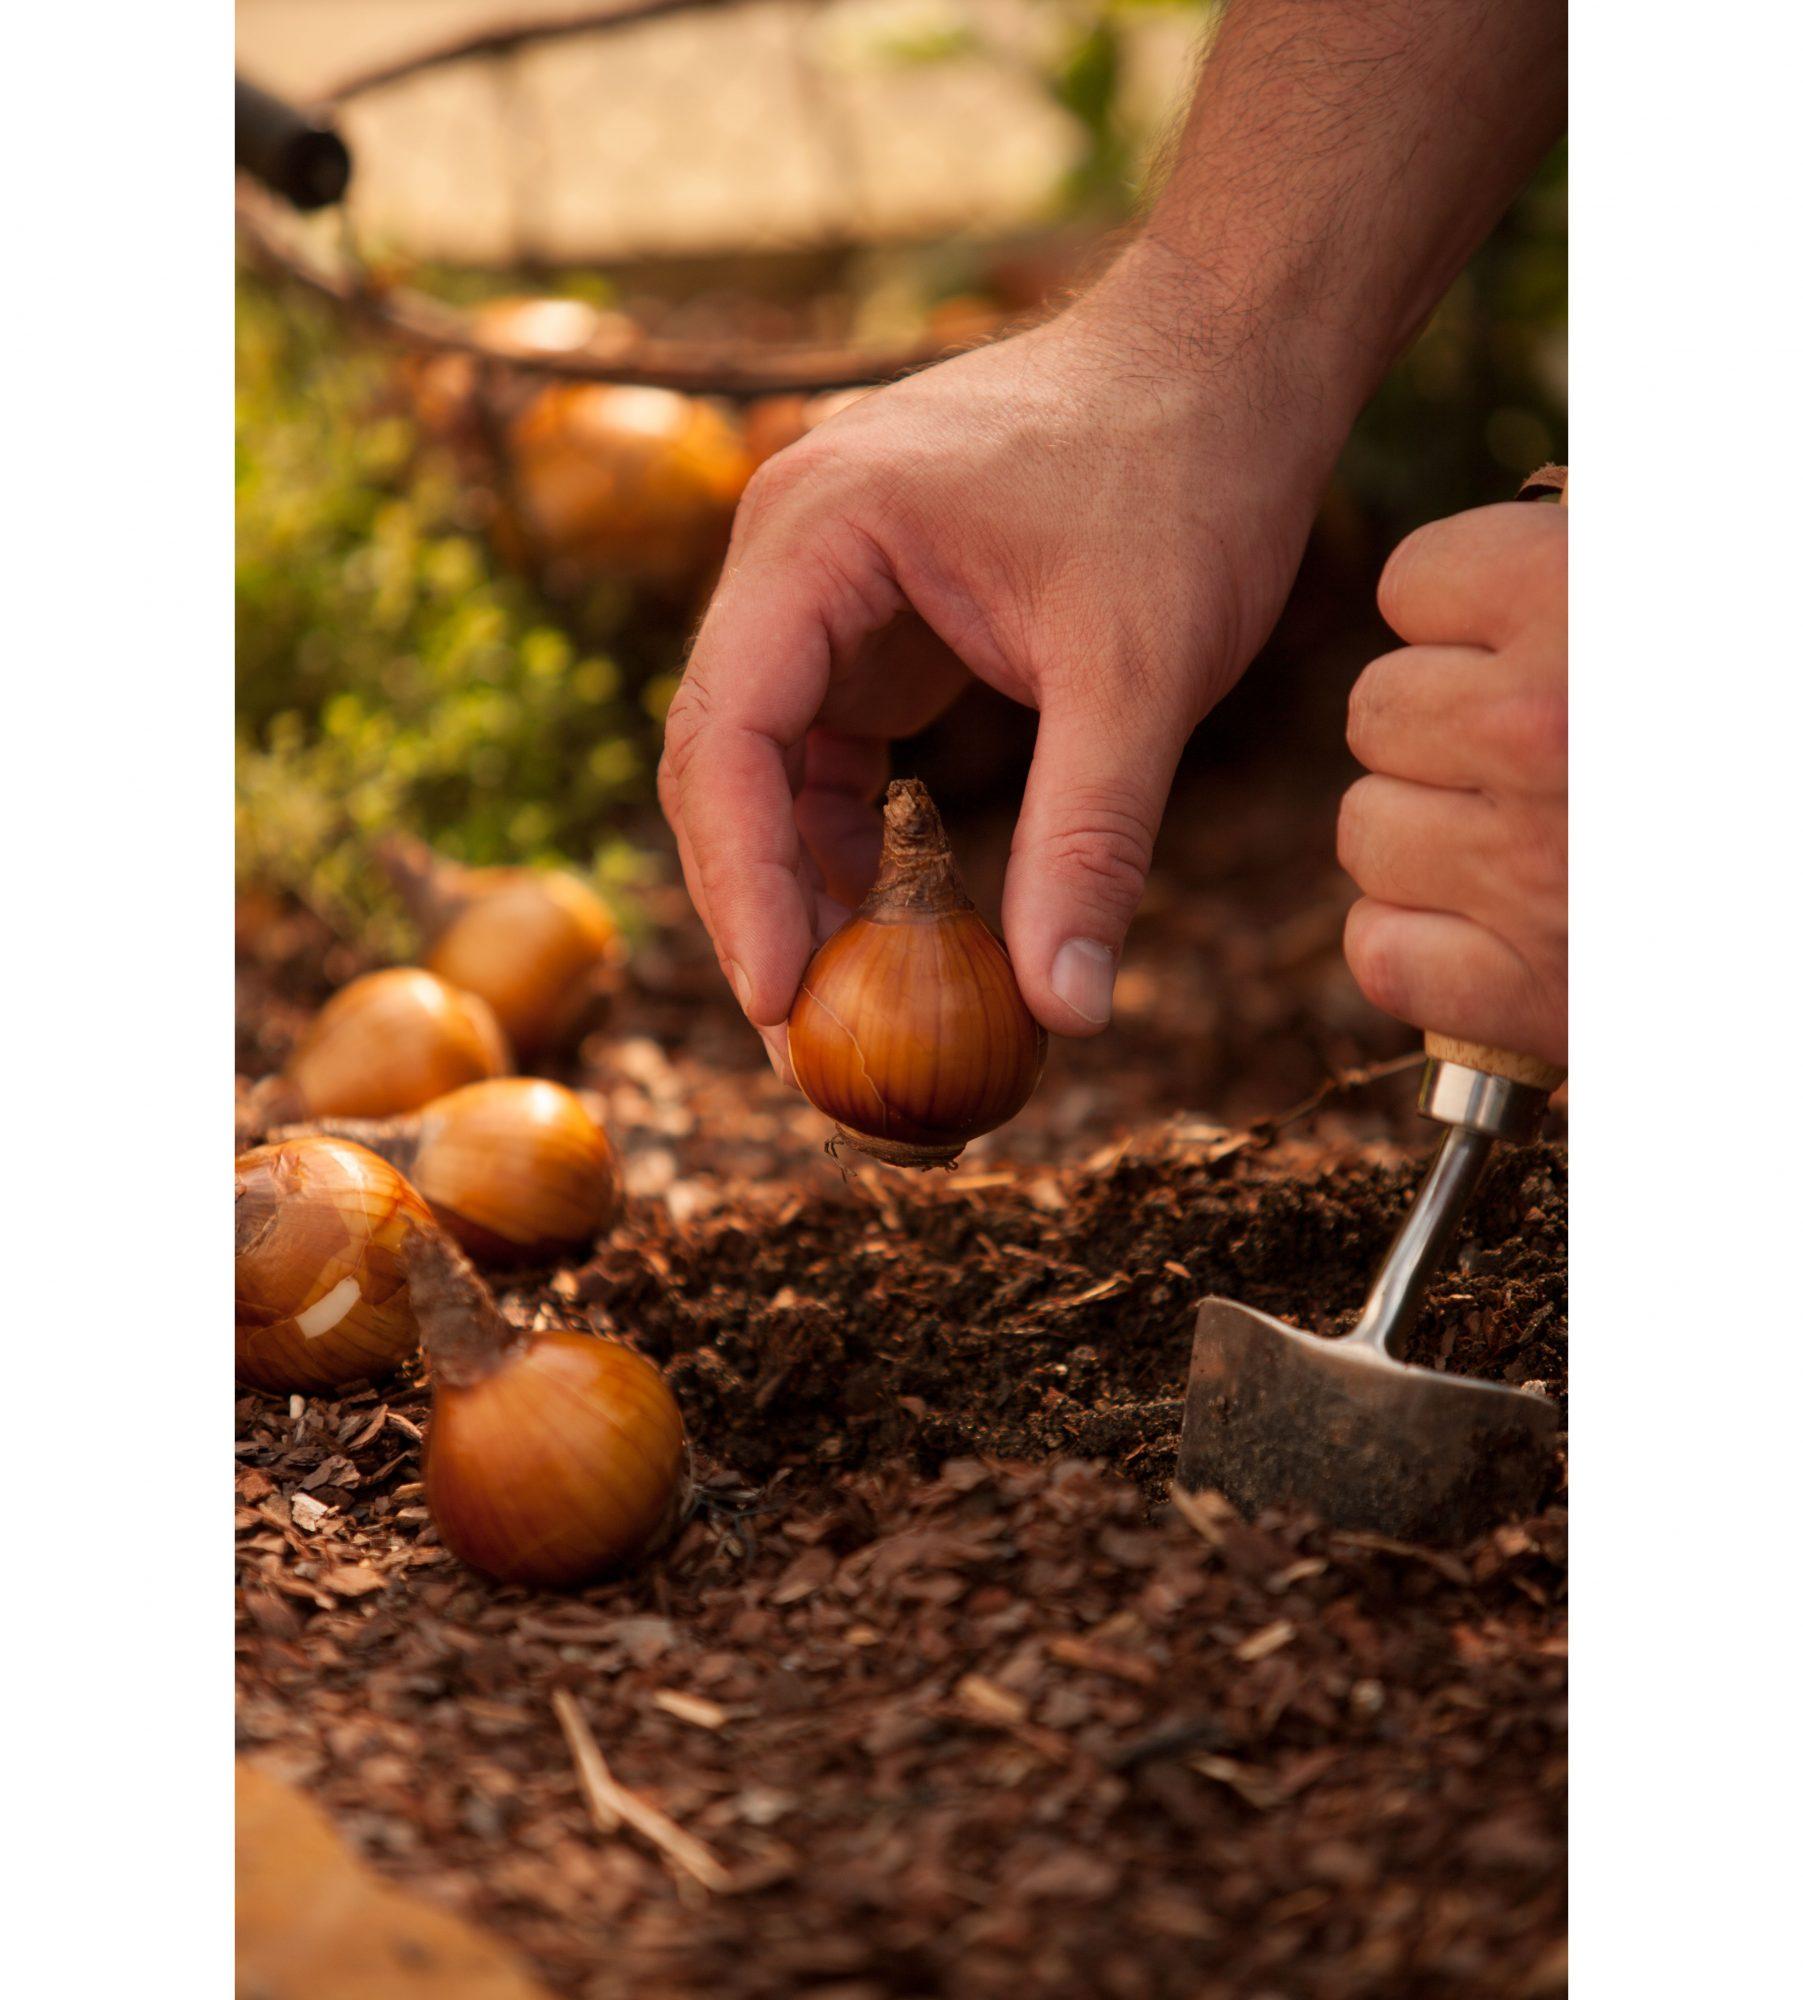 Planting Bulbs in Garden